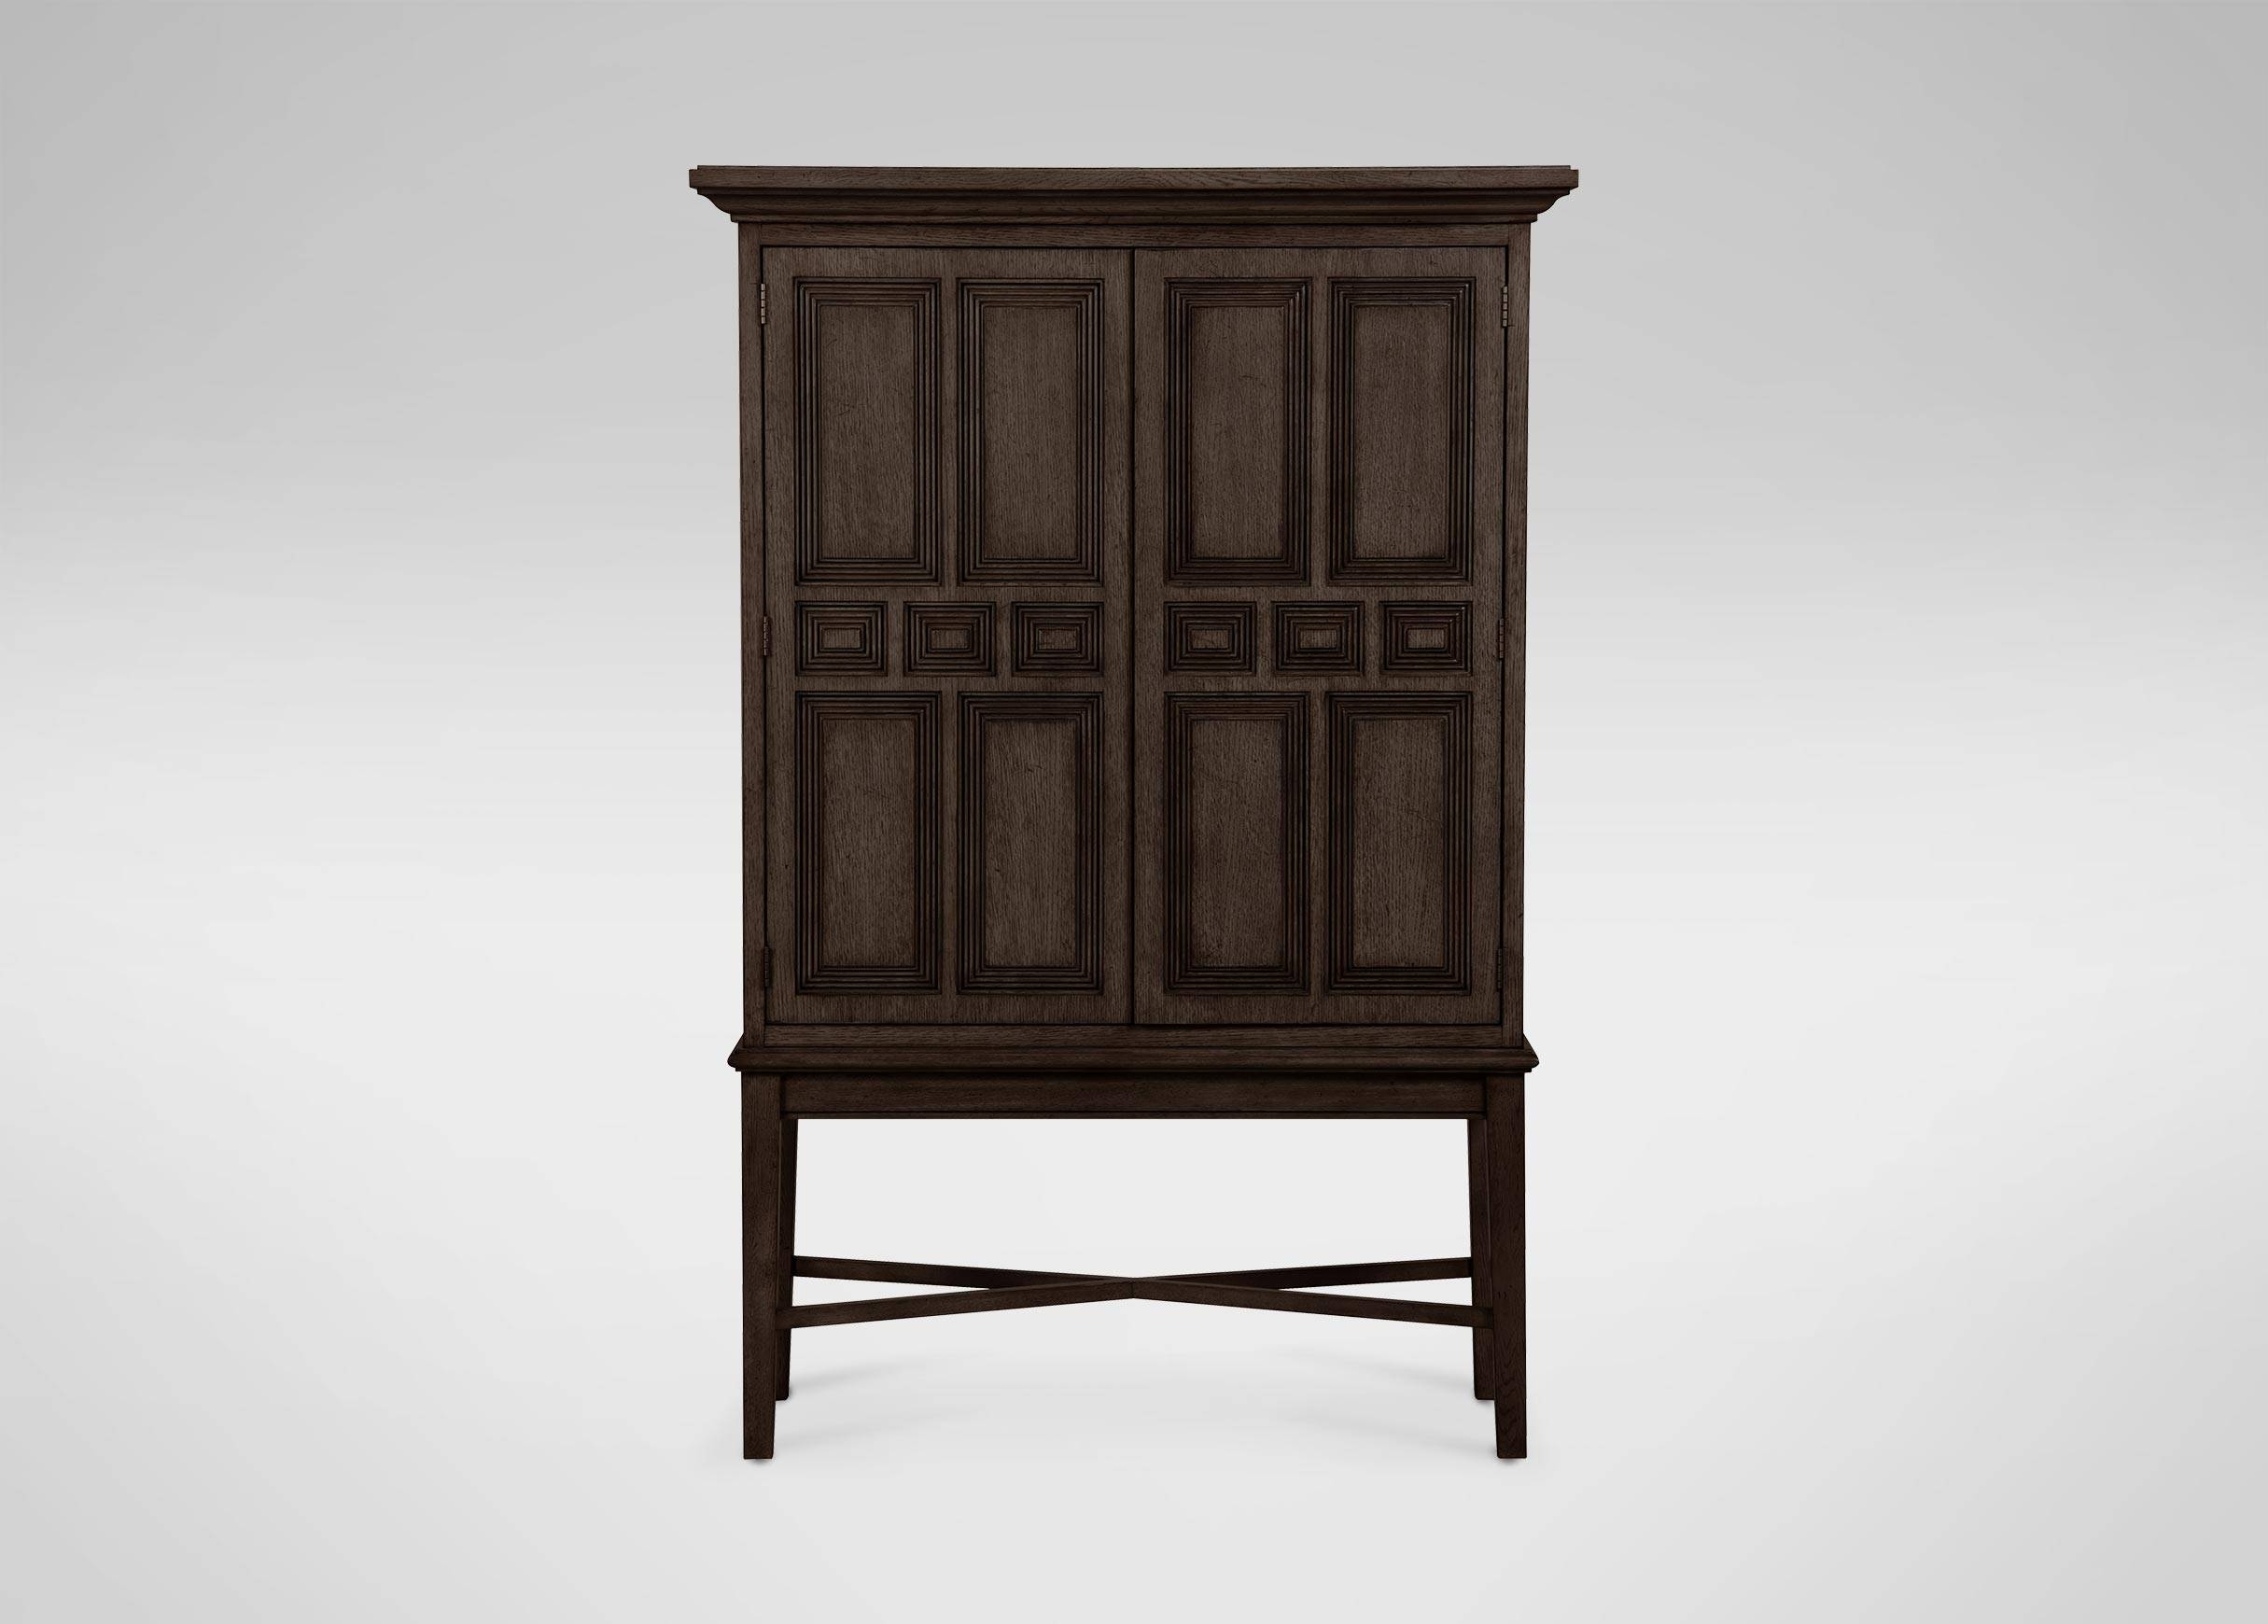 Shop Buffet Storage, Sideboards & Servers | Ethan Allen In Most Popular Buffets And Sideboards (#10 of 15)